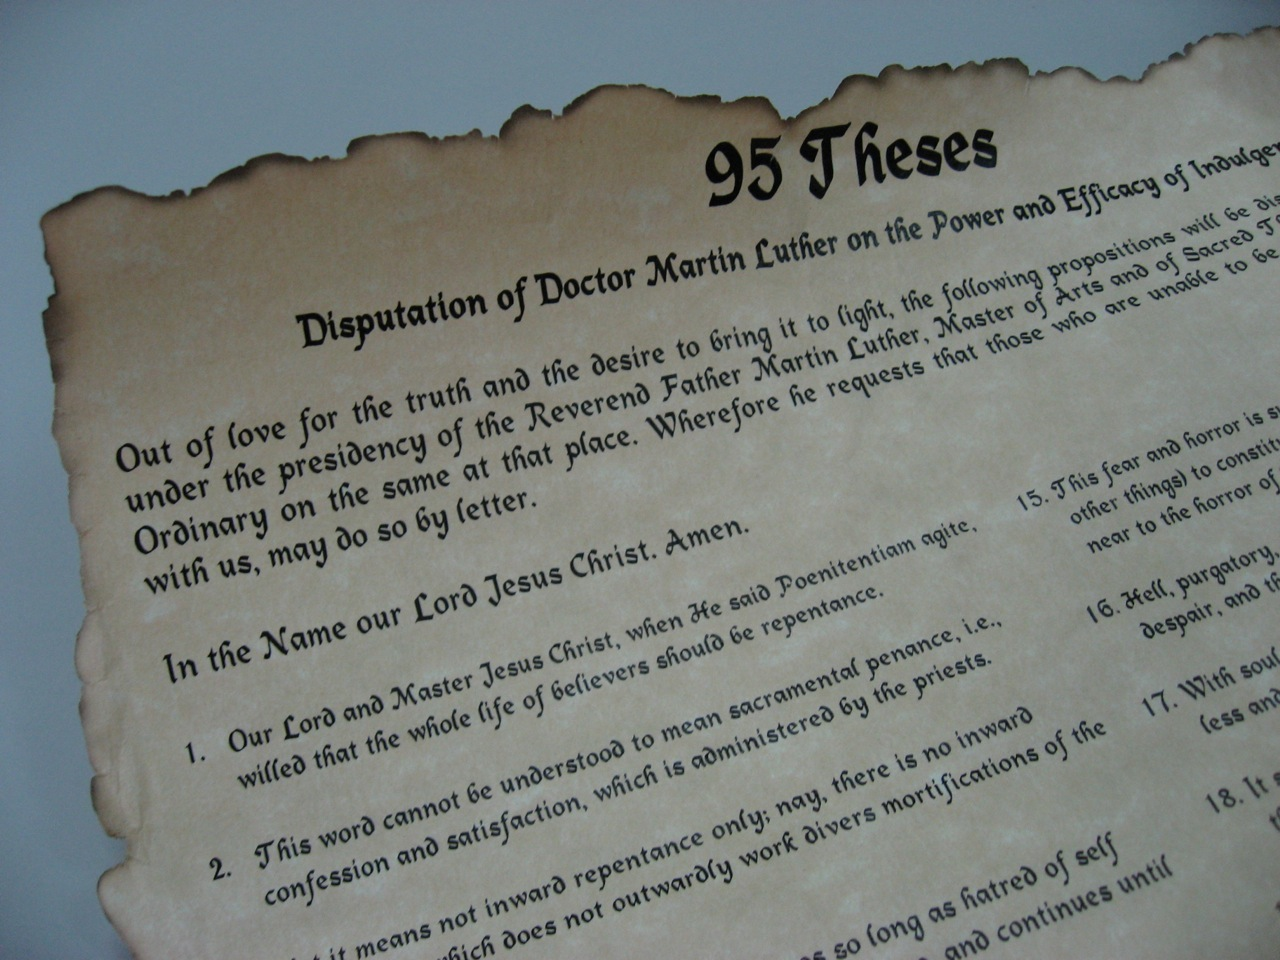 thesis 99 luthren 31, 1517, martin luther thesis 99 luthren mailed the 95 theses to local bishops that they might take action against indulgences nr productions 60,357 views 5.